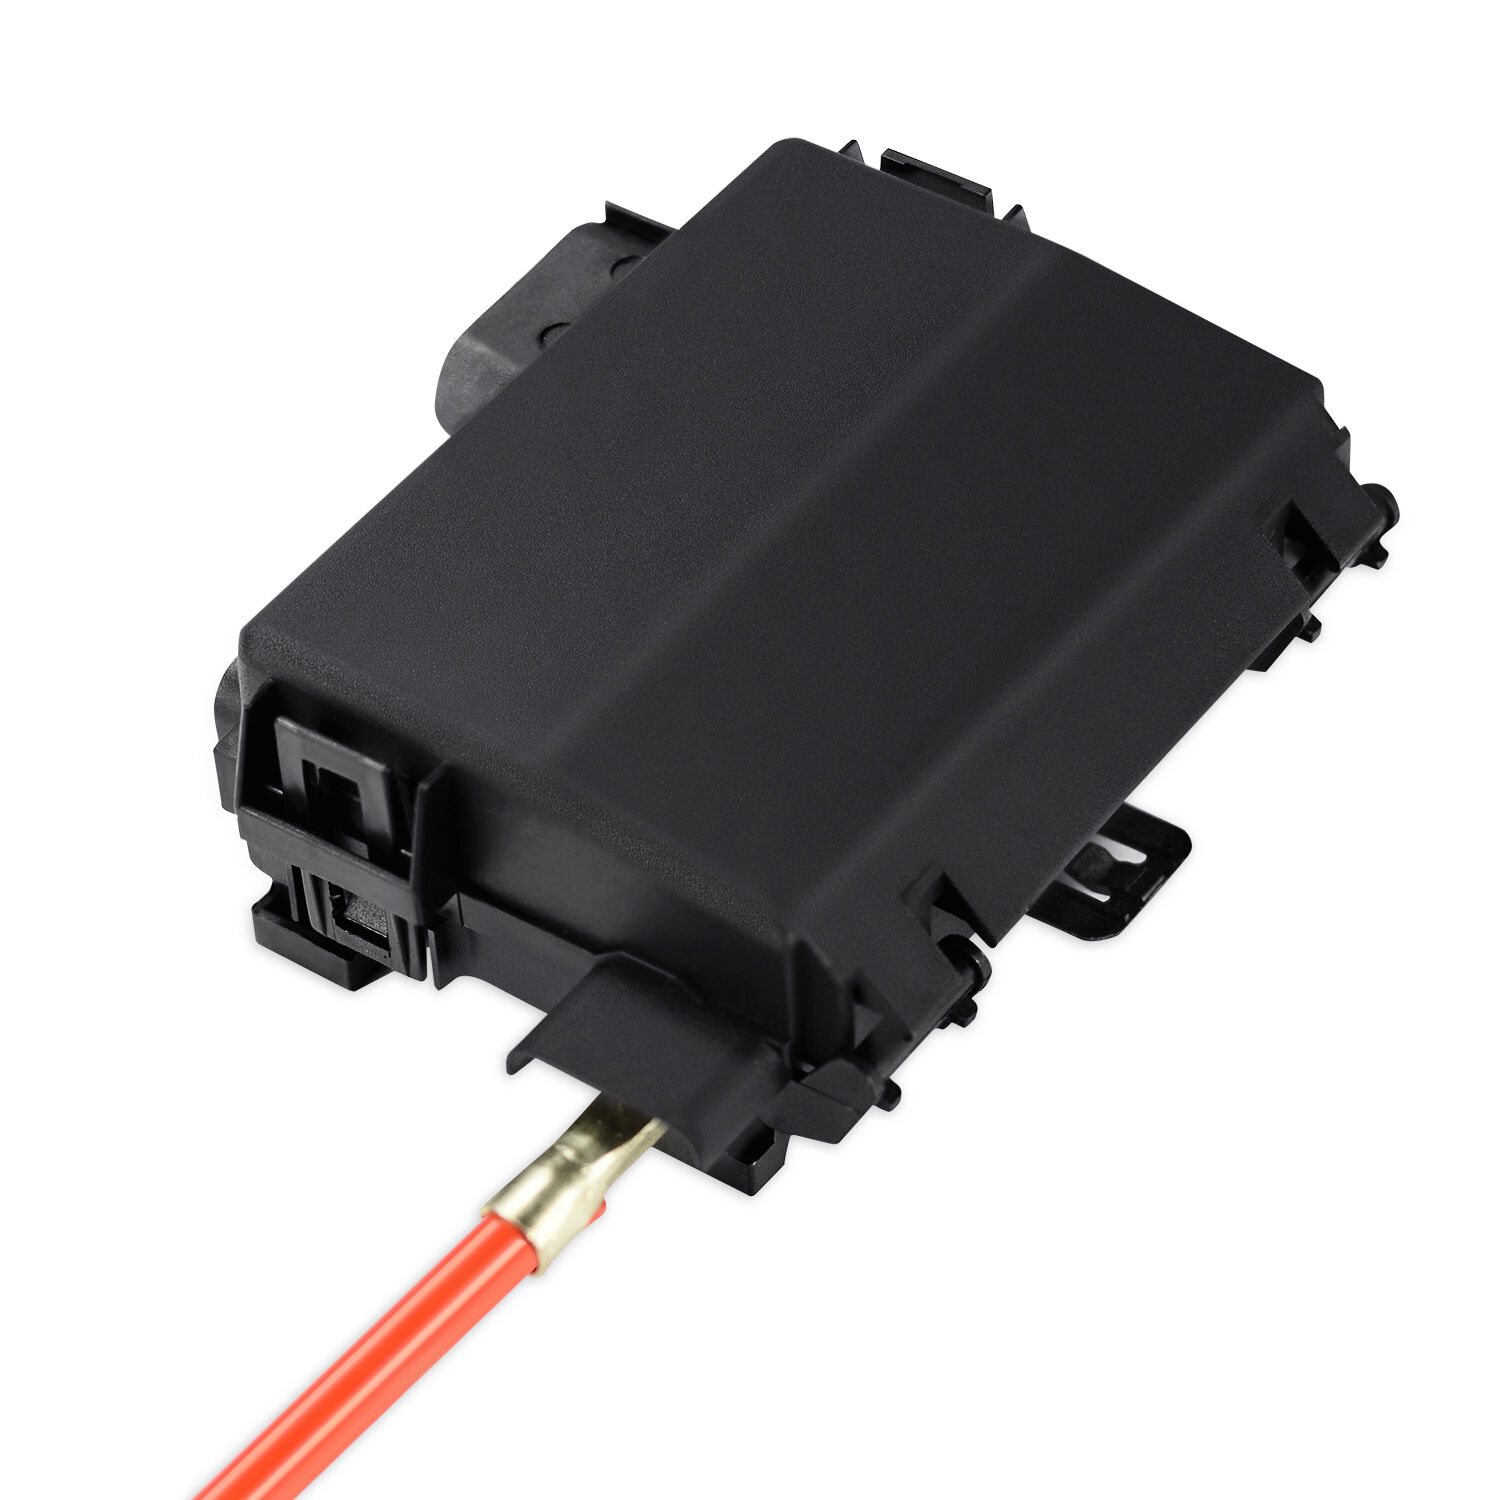 hight resolution of new fuse box battery terminal 1j0937617d 1j0937550 for vw jetta golf mk4 beetle 7 7 of 9